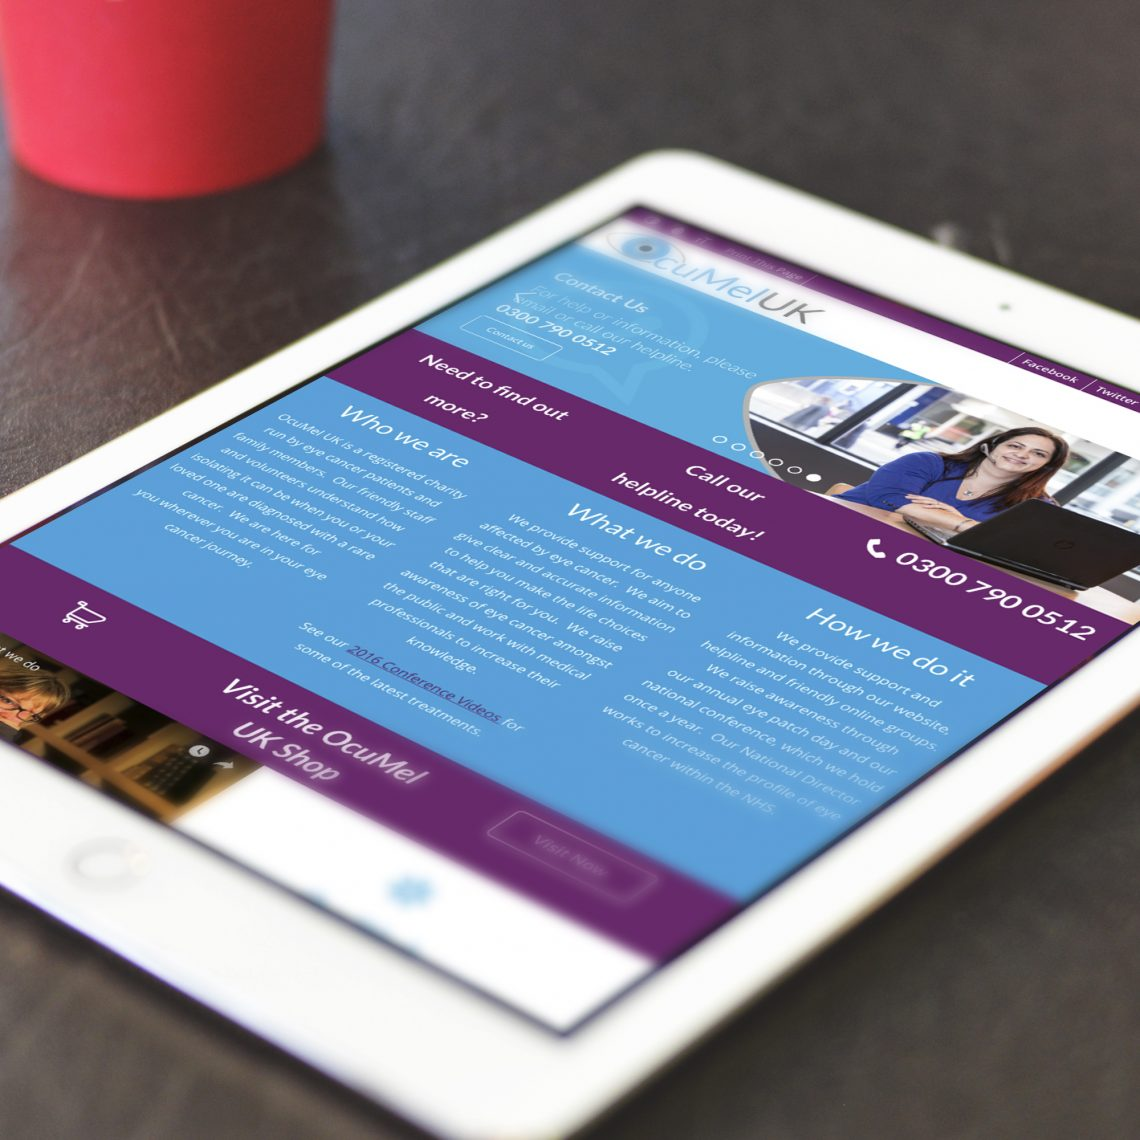 Ocumel contact page on a tablet